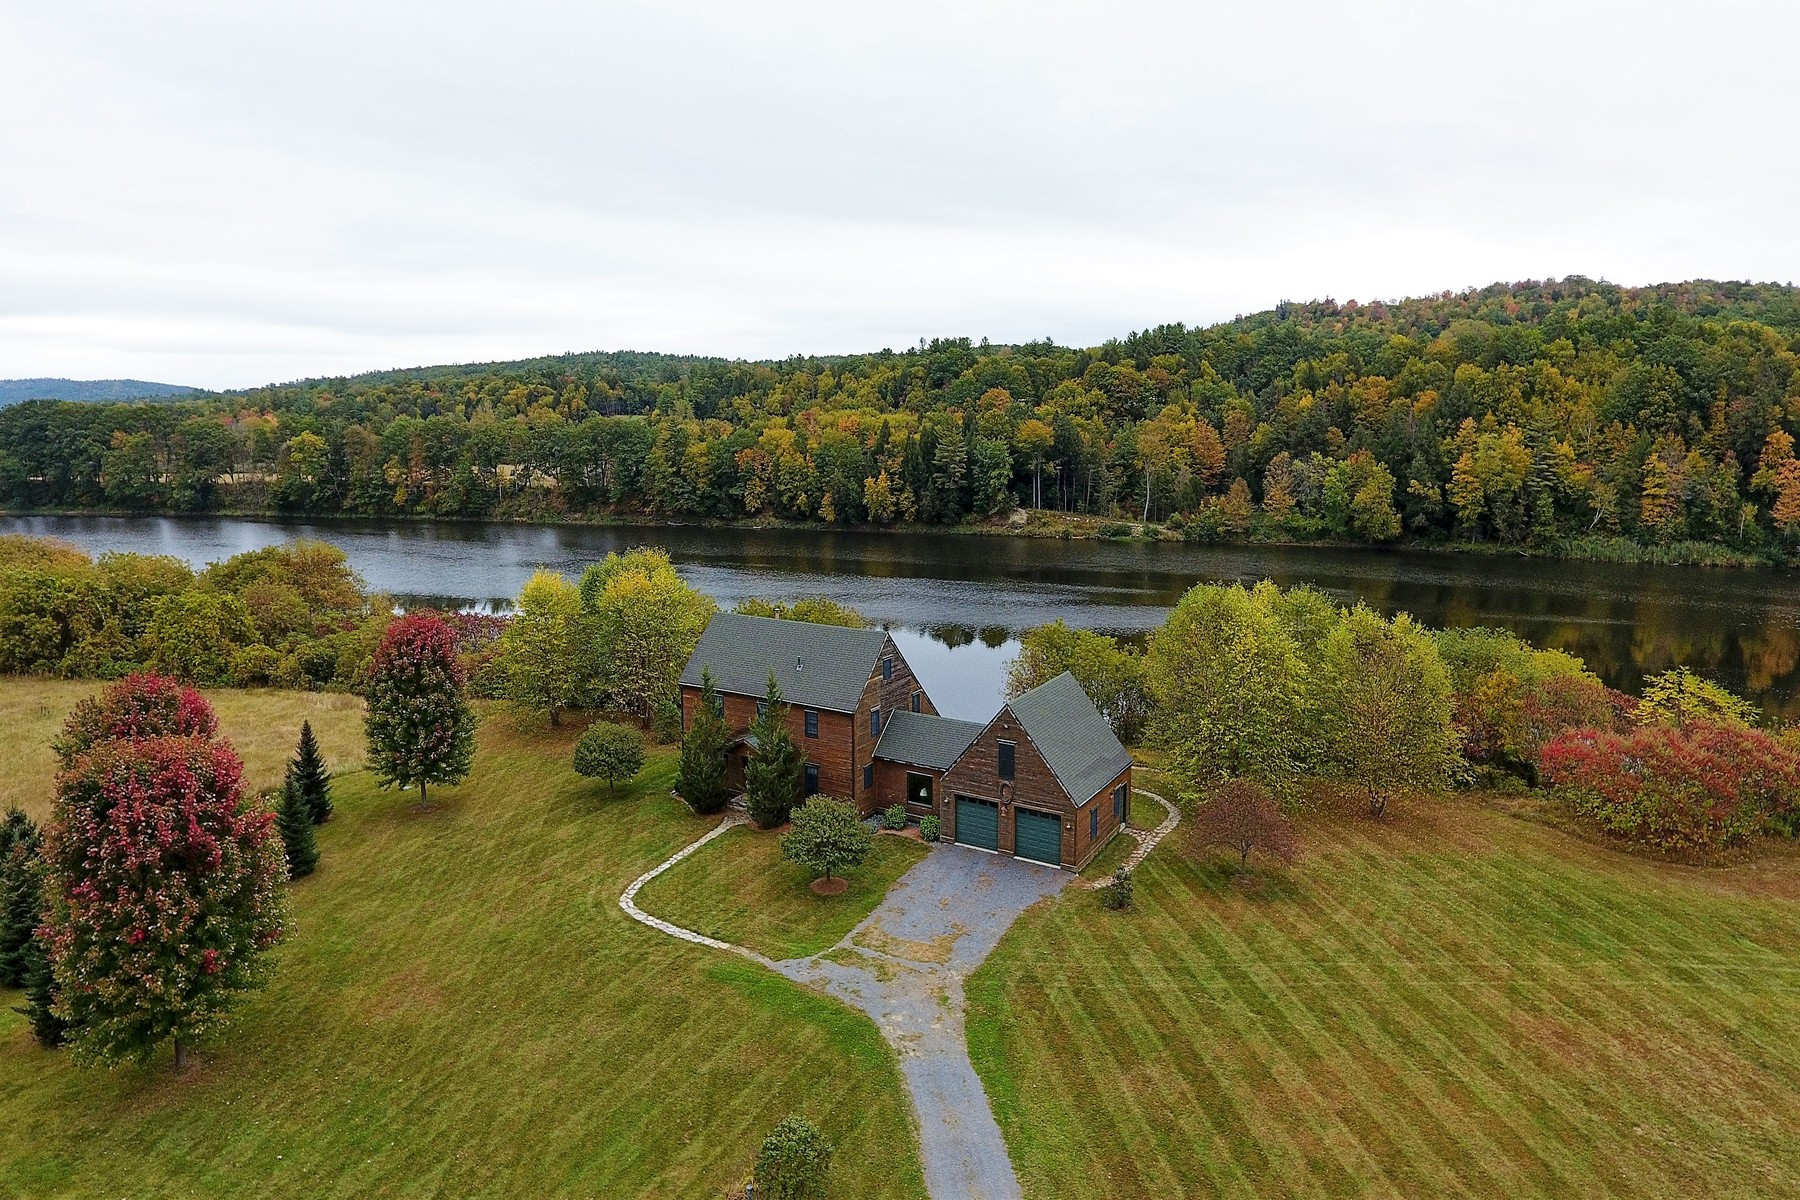 Single Family Homes for Sale at Tranquil Connecticut River Estate 1811 Connecticut River Road Springfield, Vermont 05156 United States